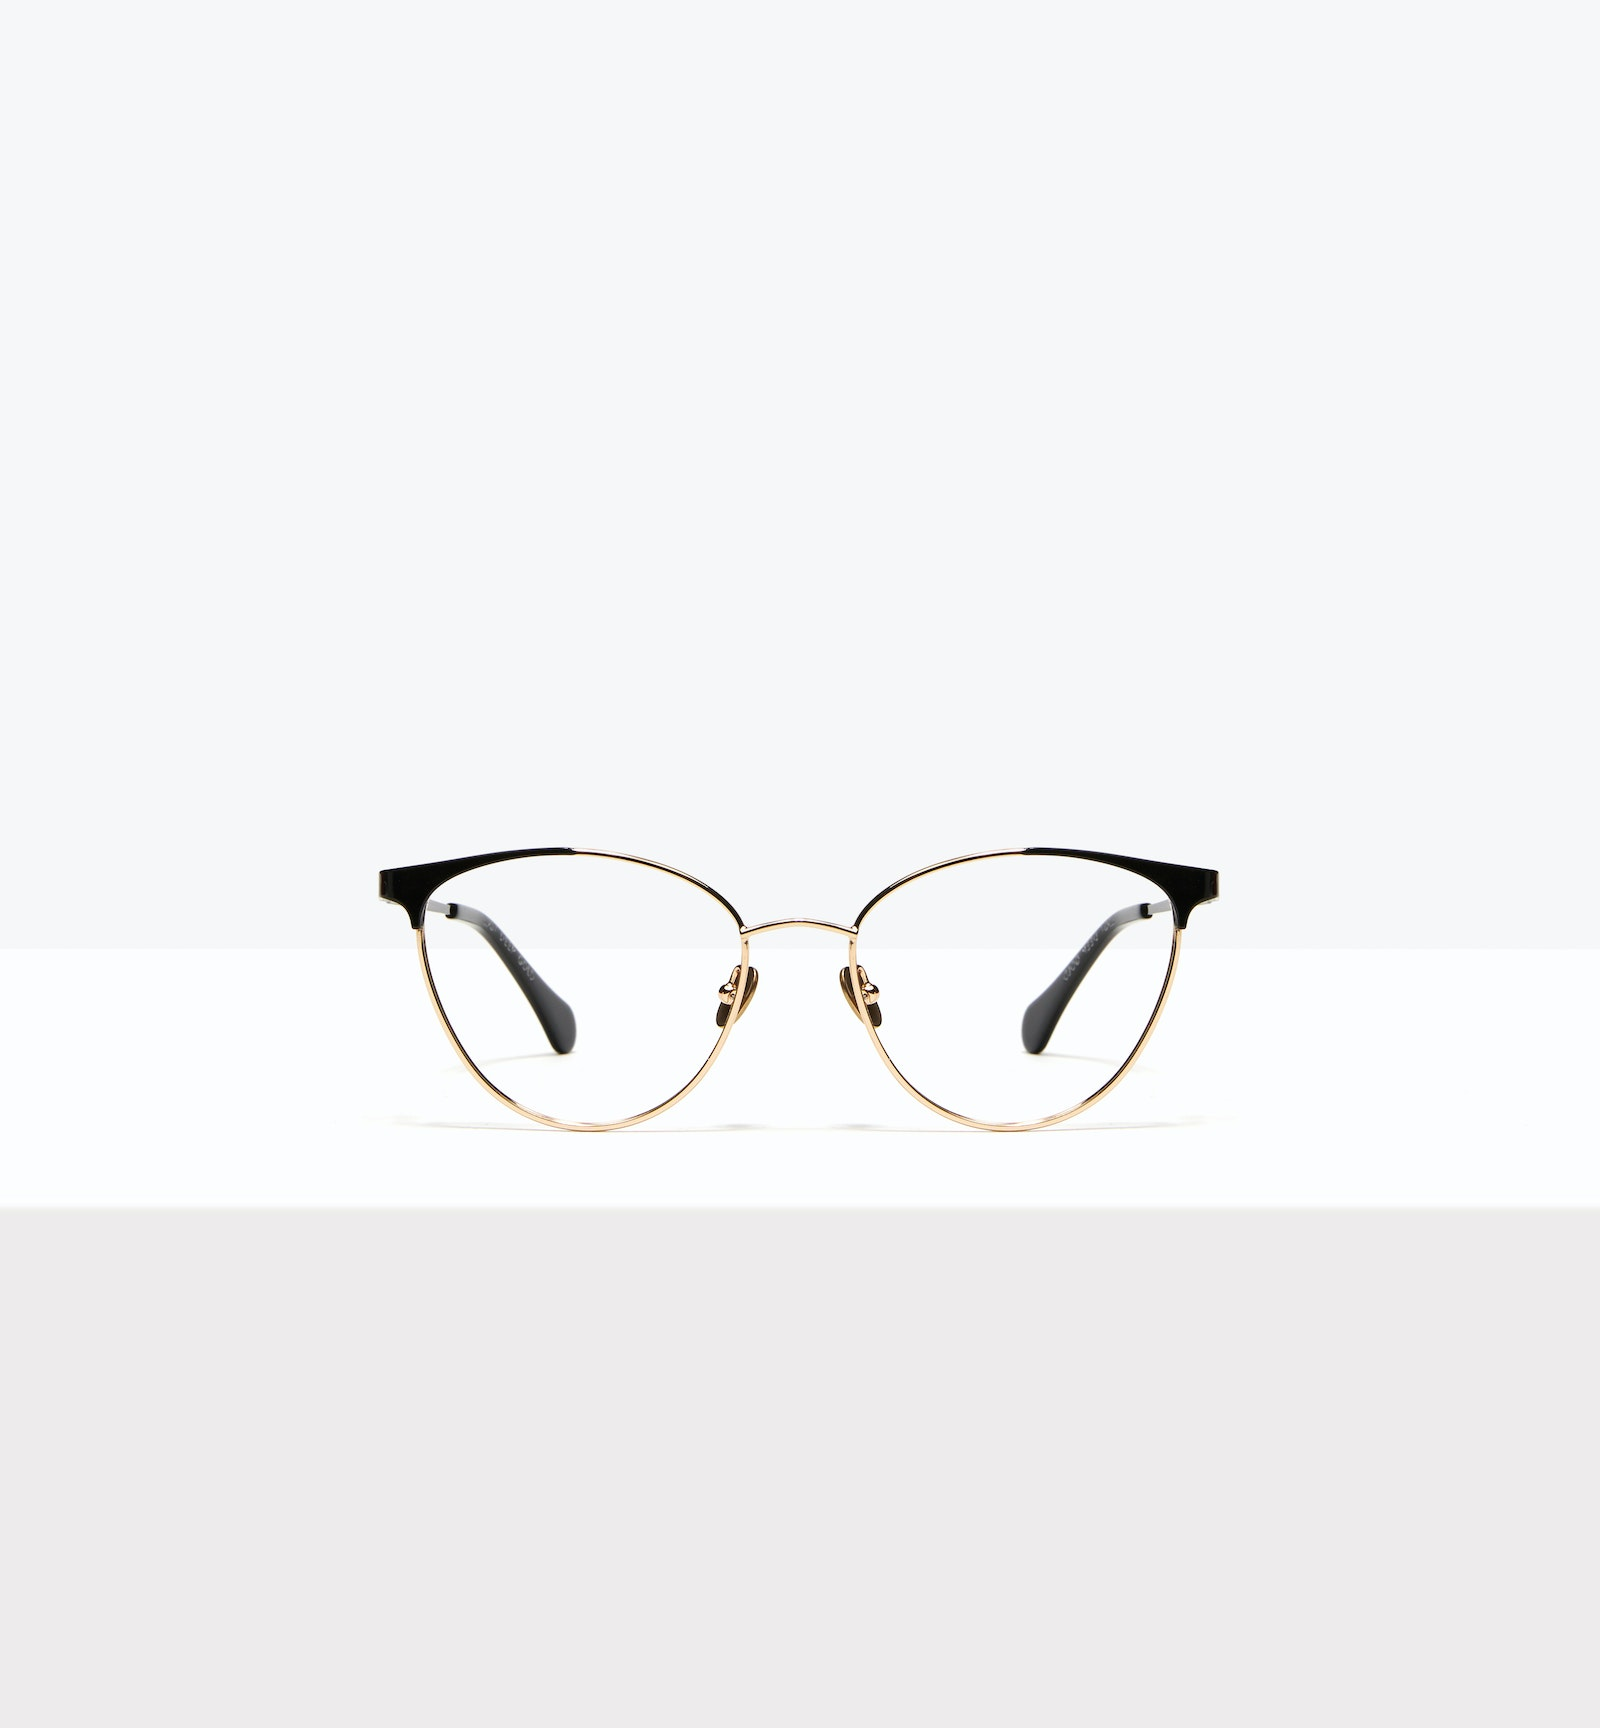 Affordable Fashion Glasses Cat Eye Eyeglasses Women Edgy Deep Gold